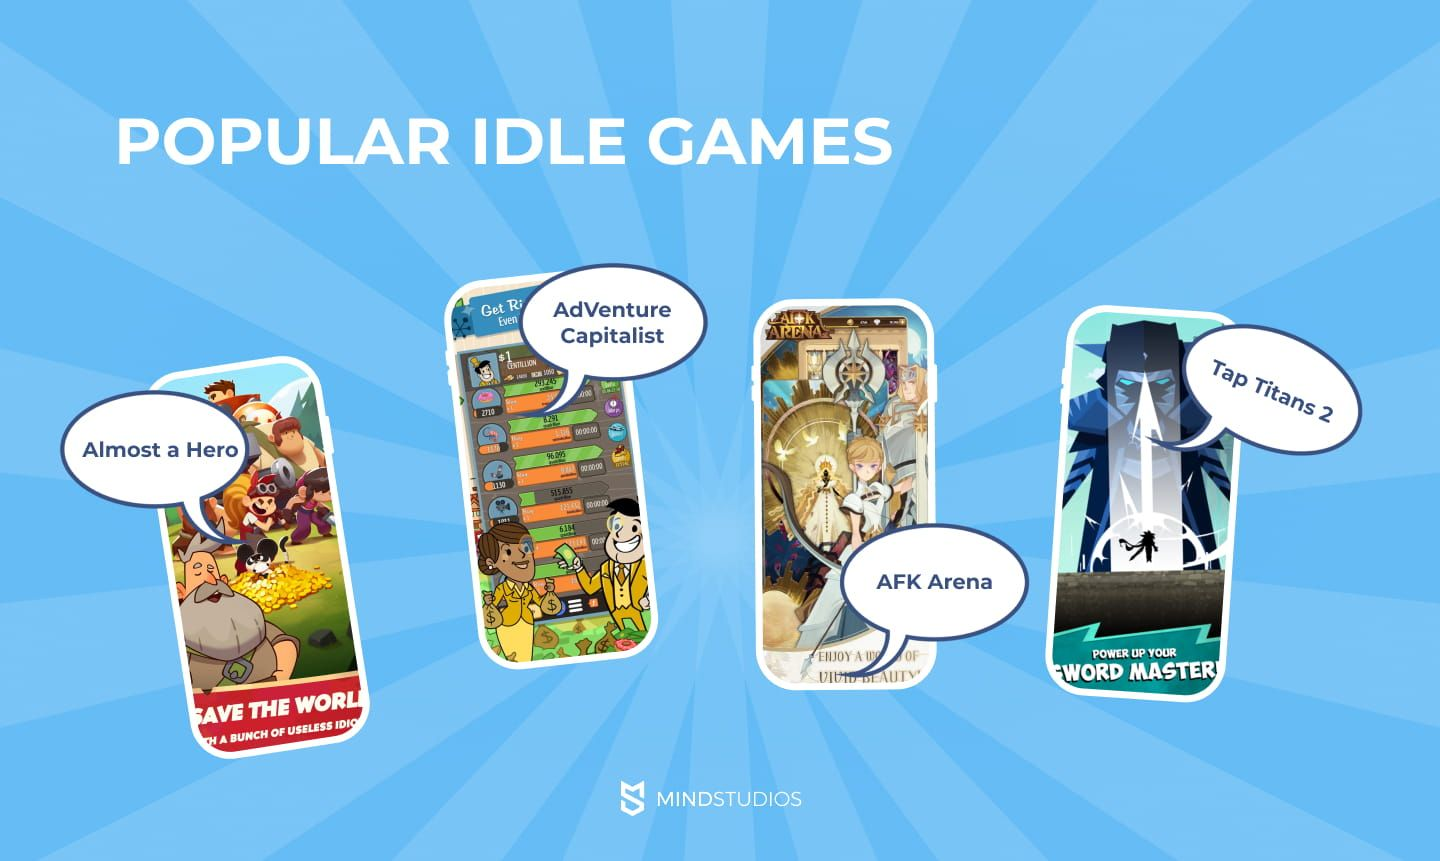 Popular idle games examples